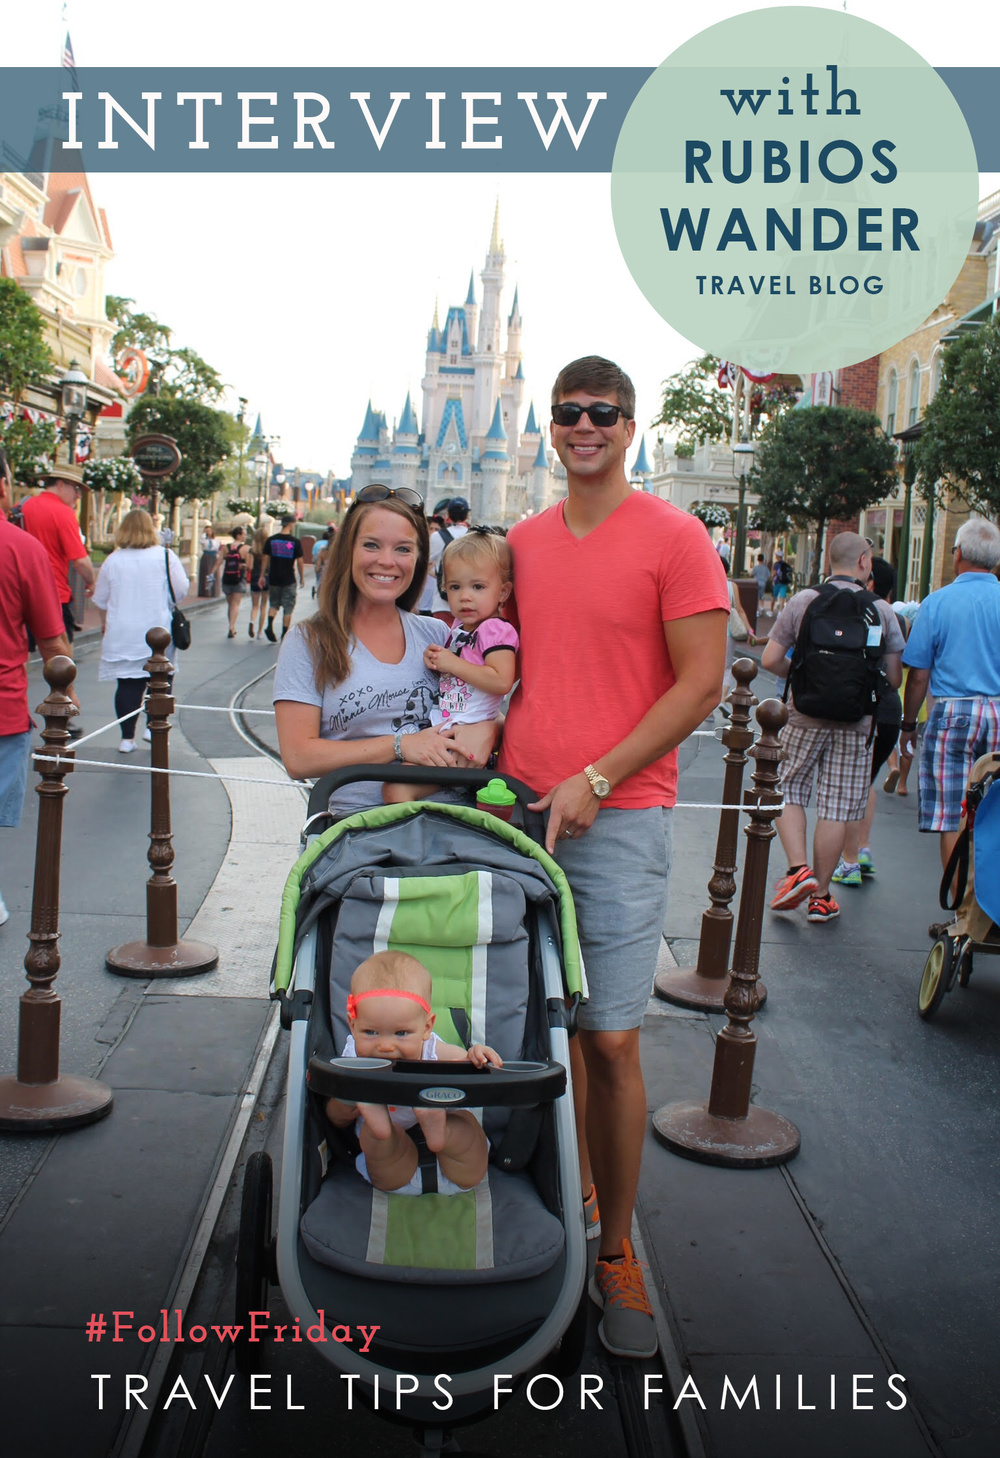 Family picture at Magic Kingdom in Walt Disney World. July 2015.